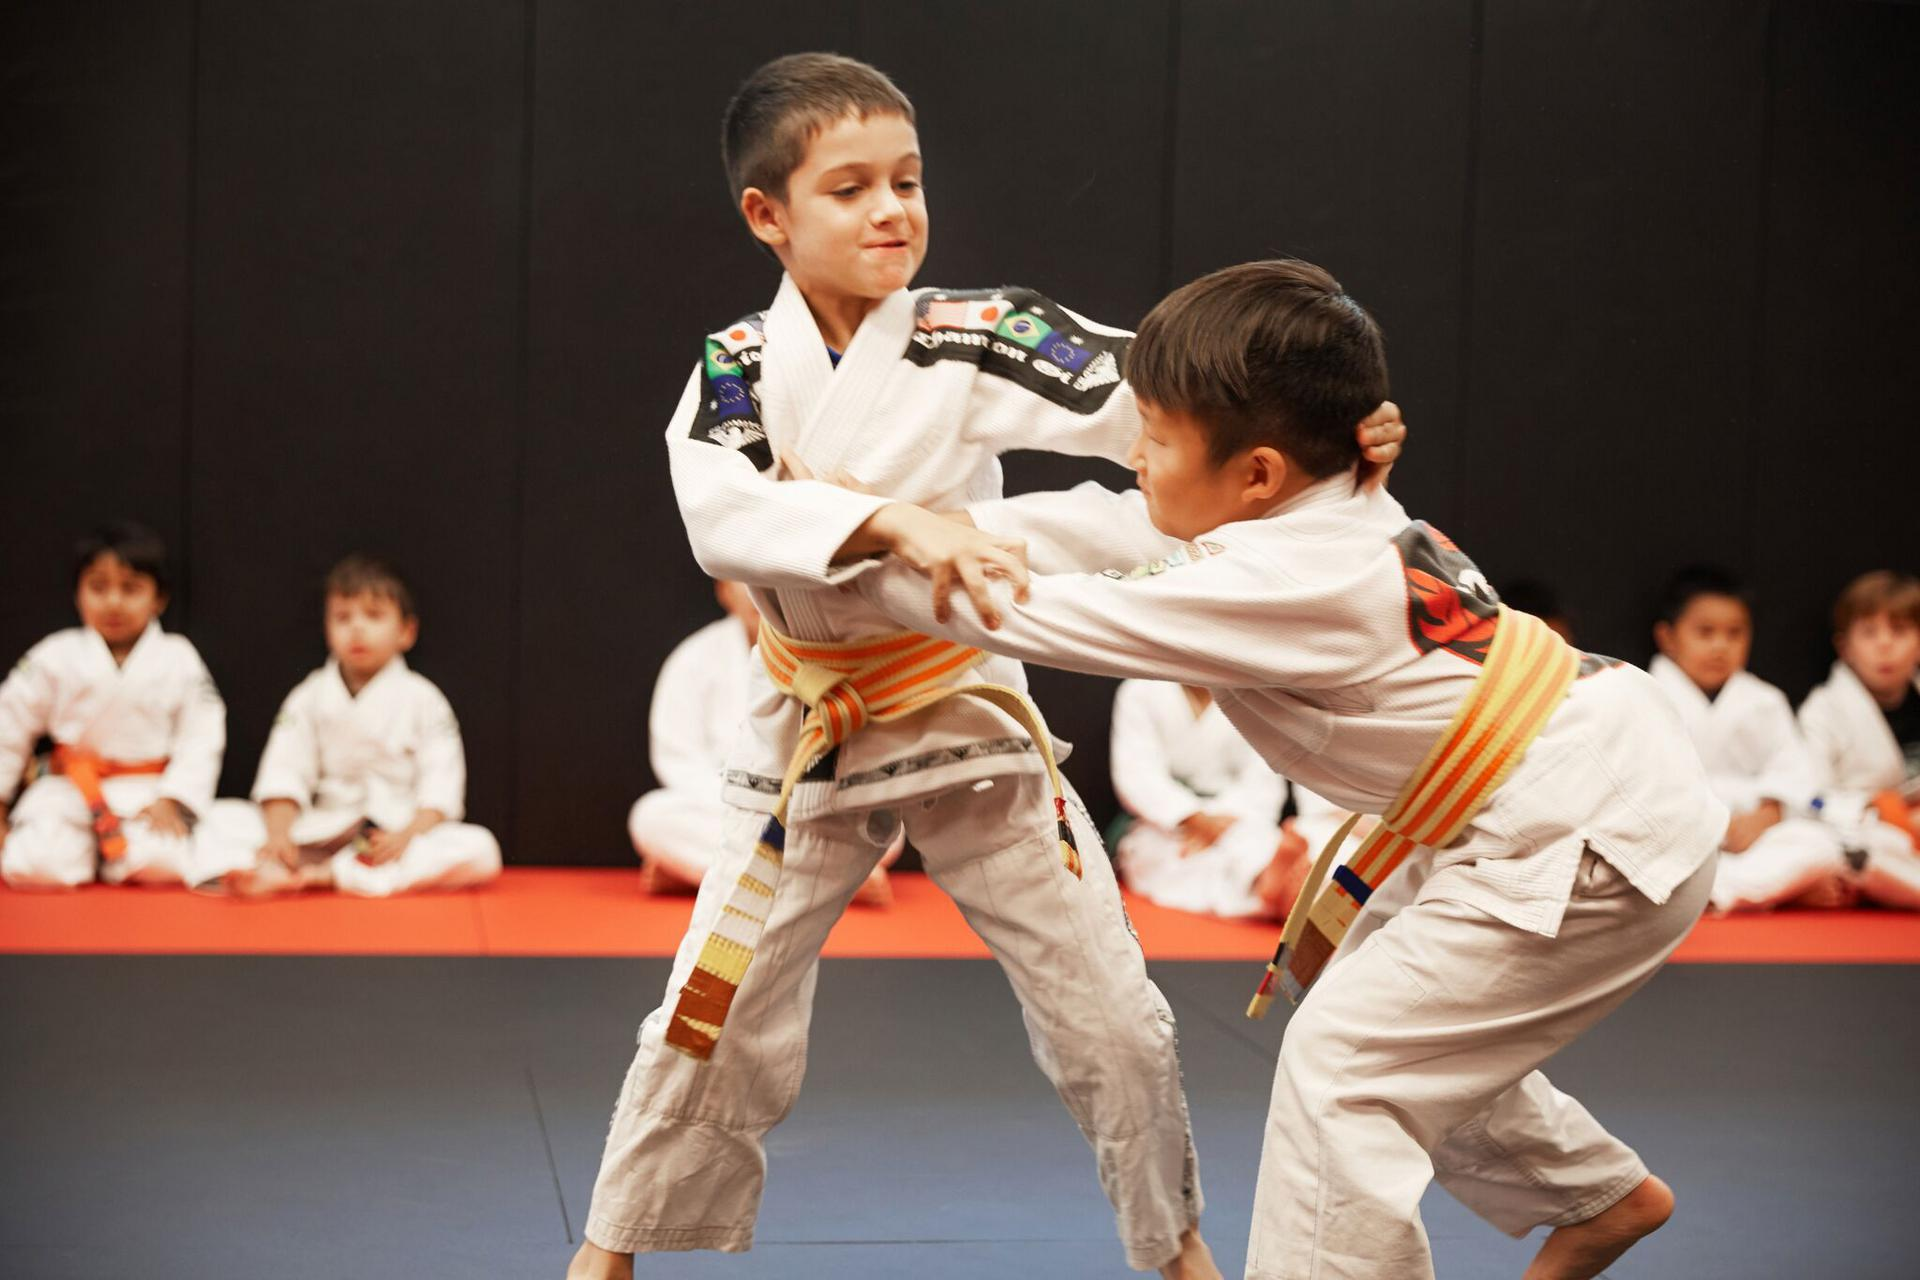 a confident kid doing a match with another child in a kids martial arts class focused on bullying